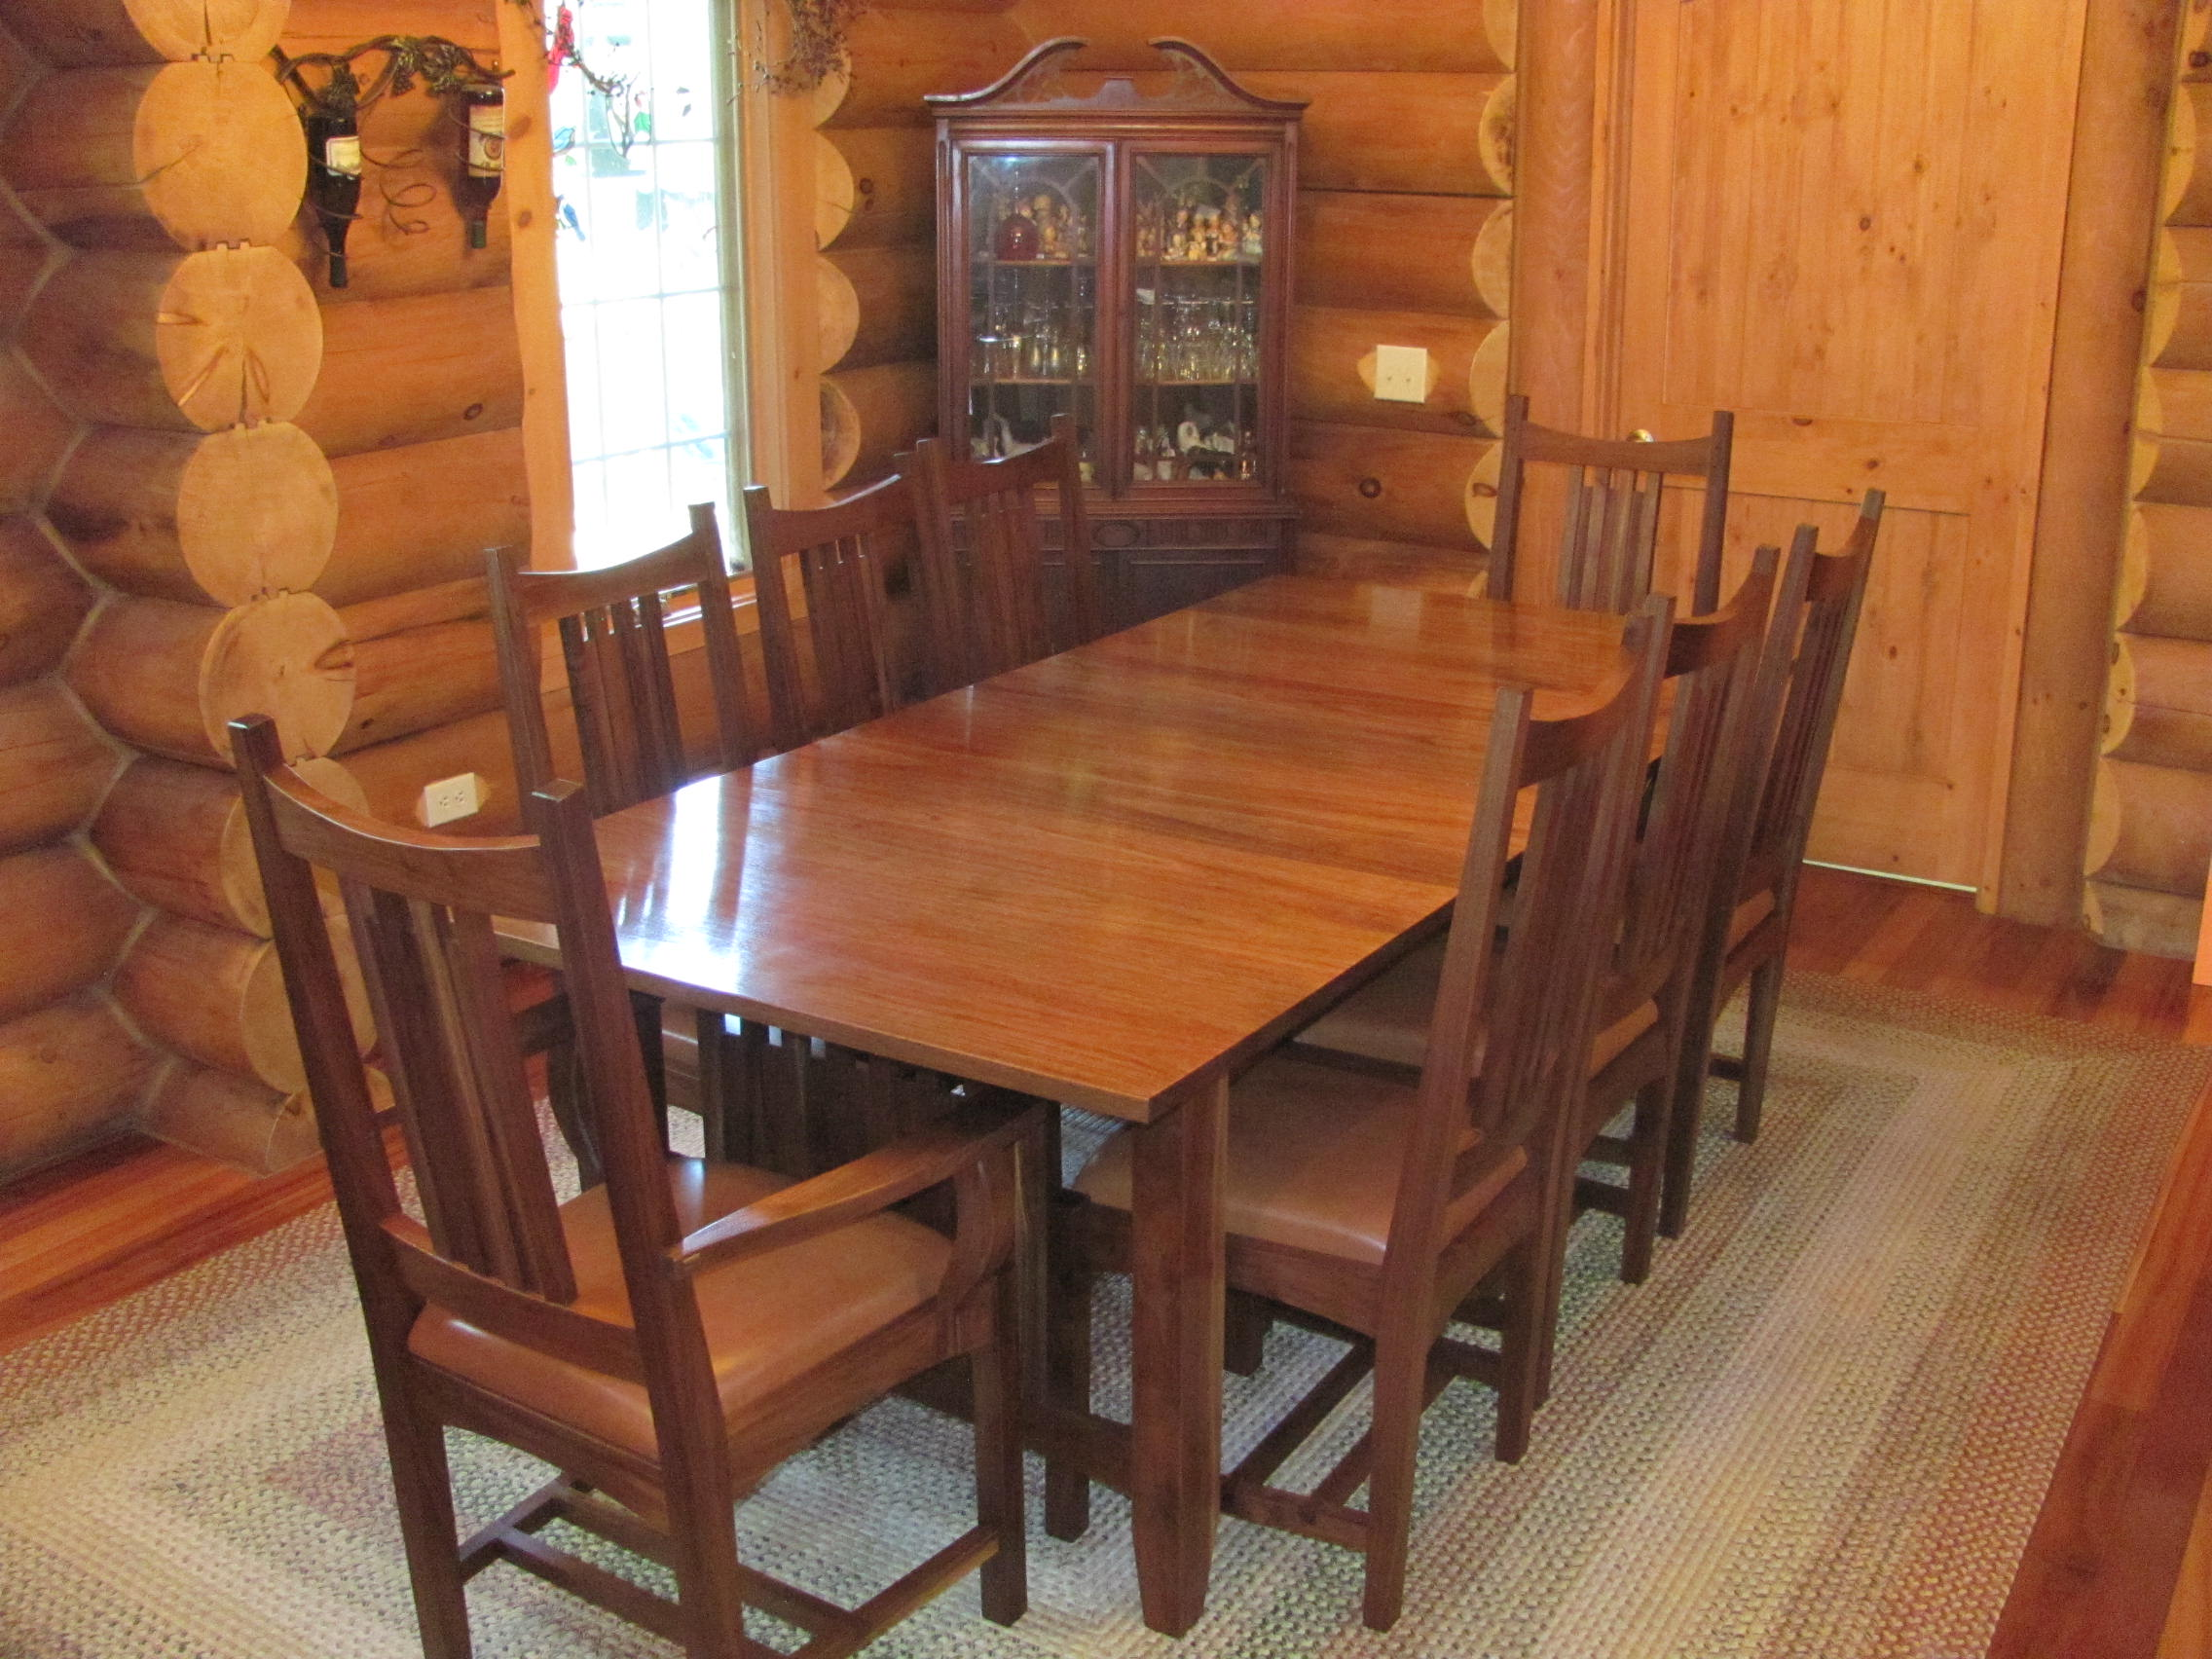 "Stunning solid black walnut mission-style table and chairs. Table 42 x 70"" with one 18"" leaf. Mortise and tenon construction."